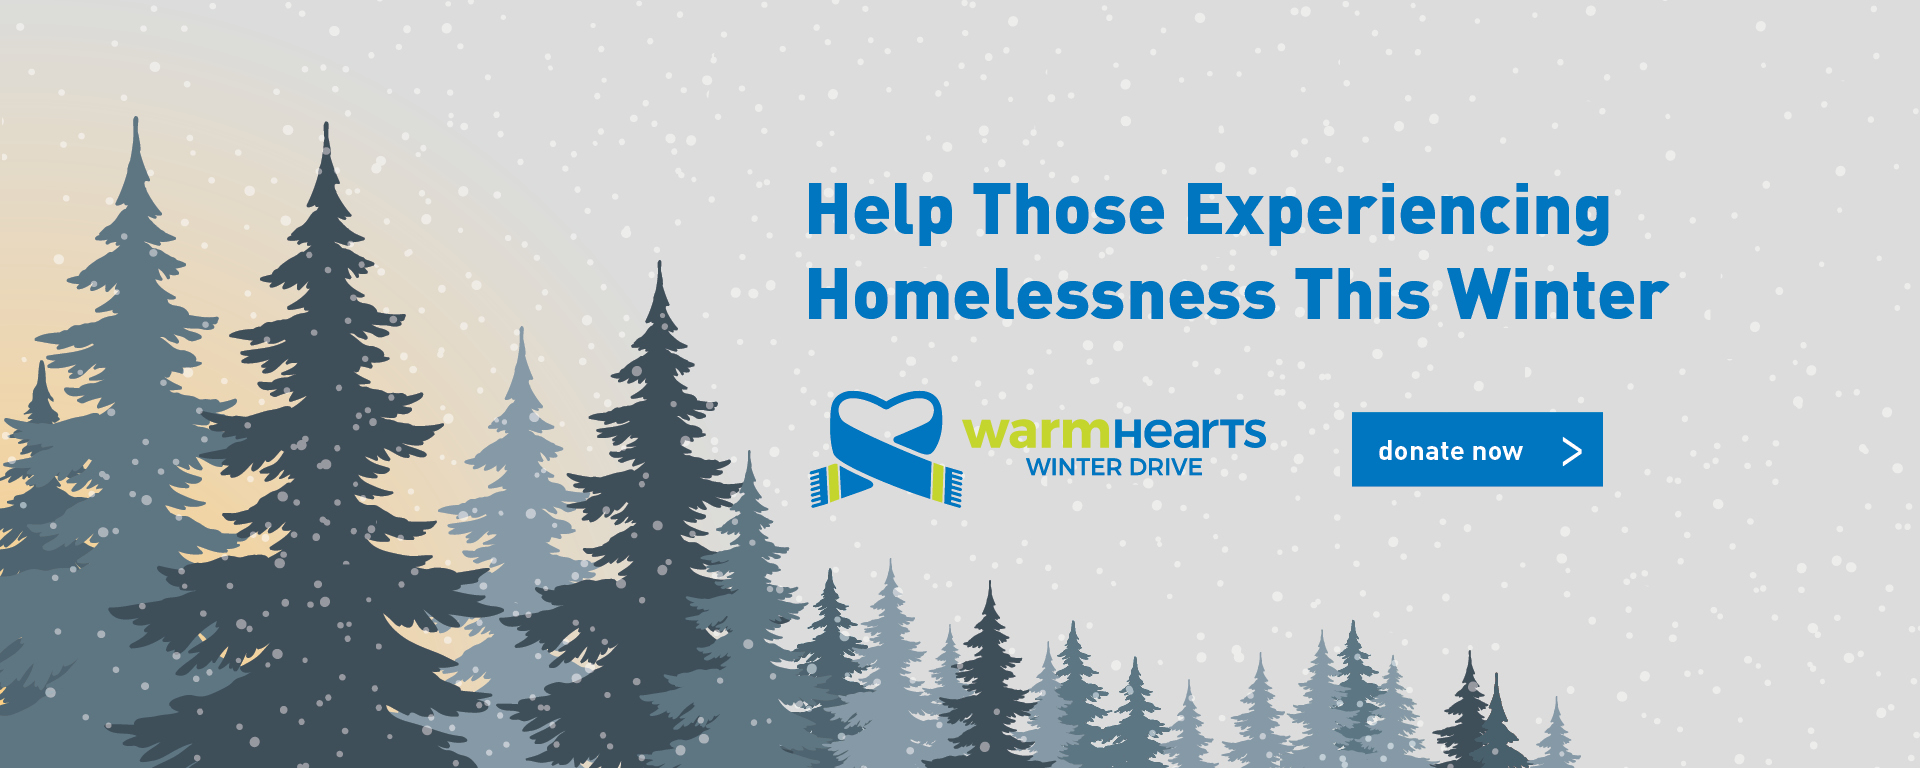 Warm Hearts Winter Drive